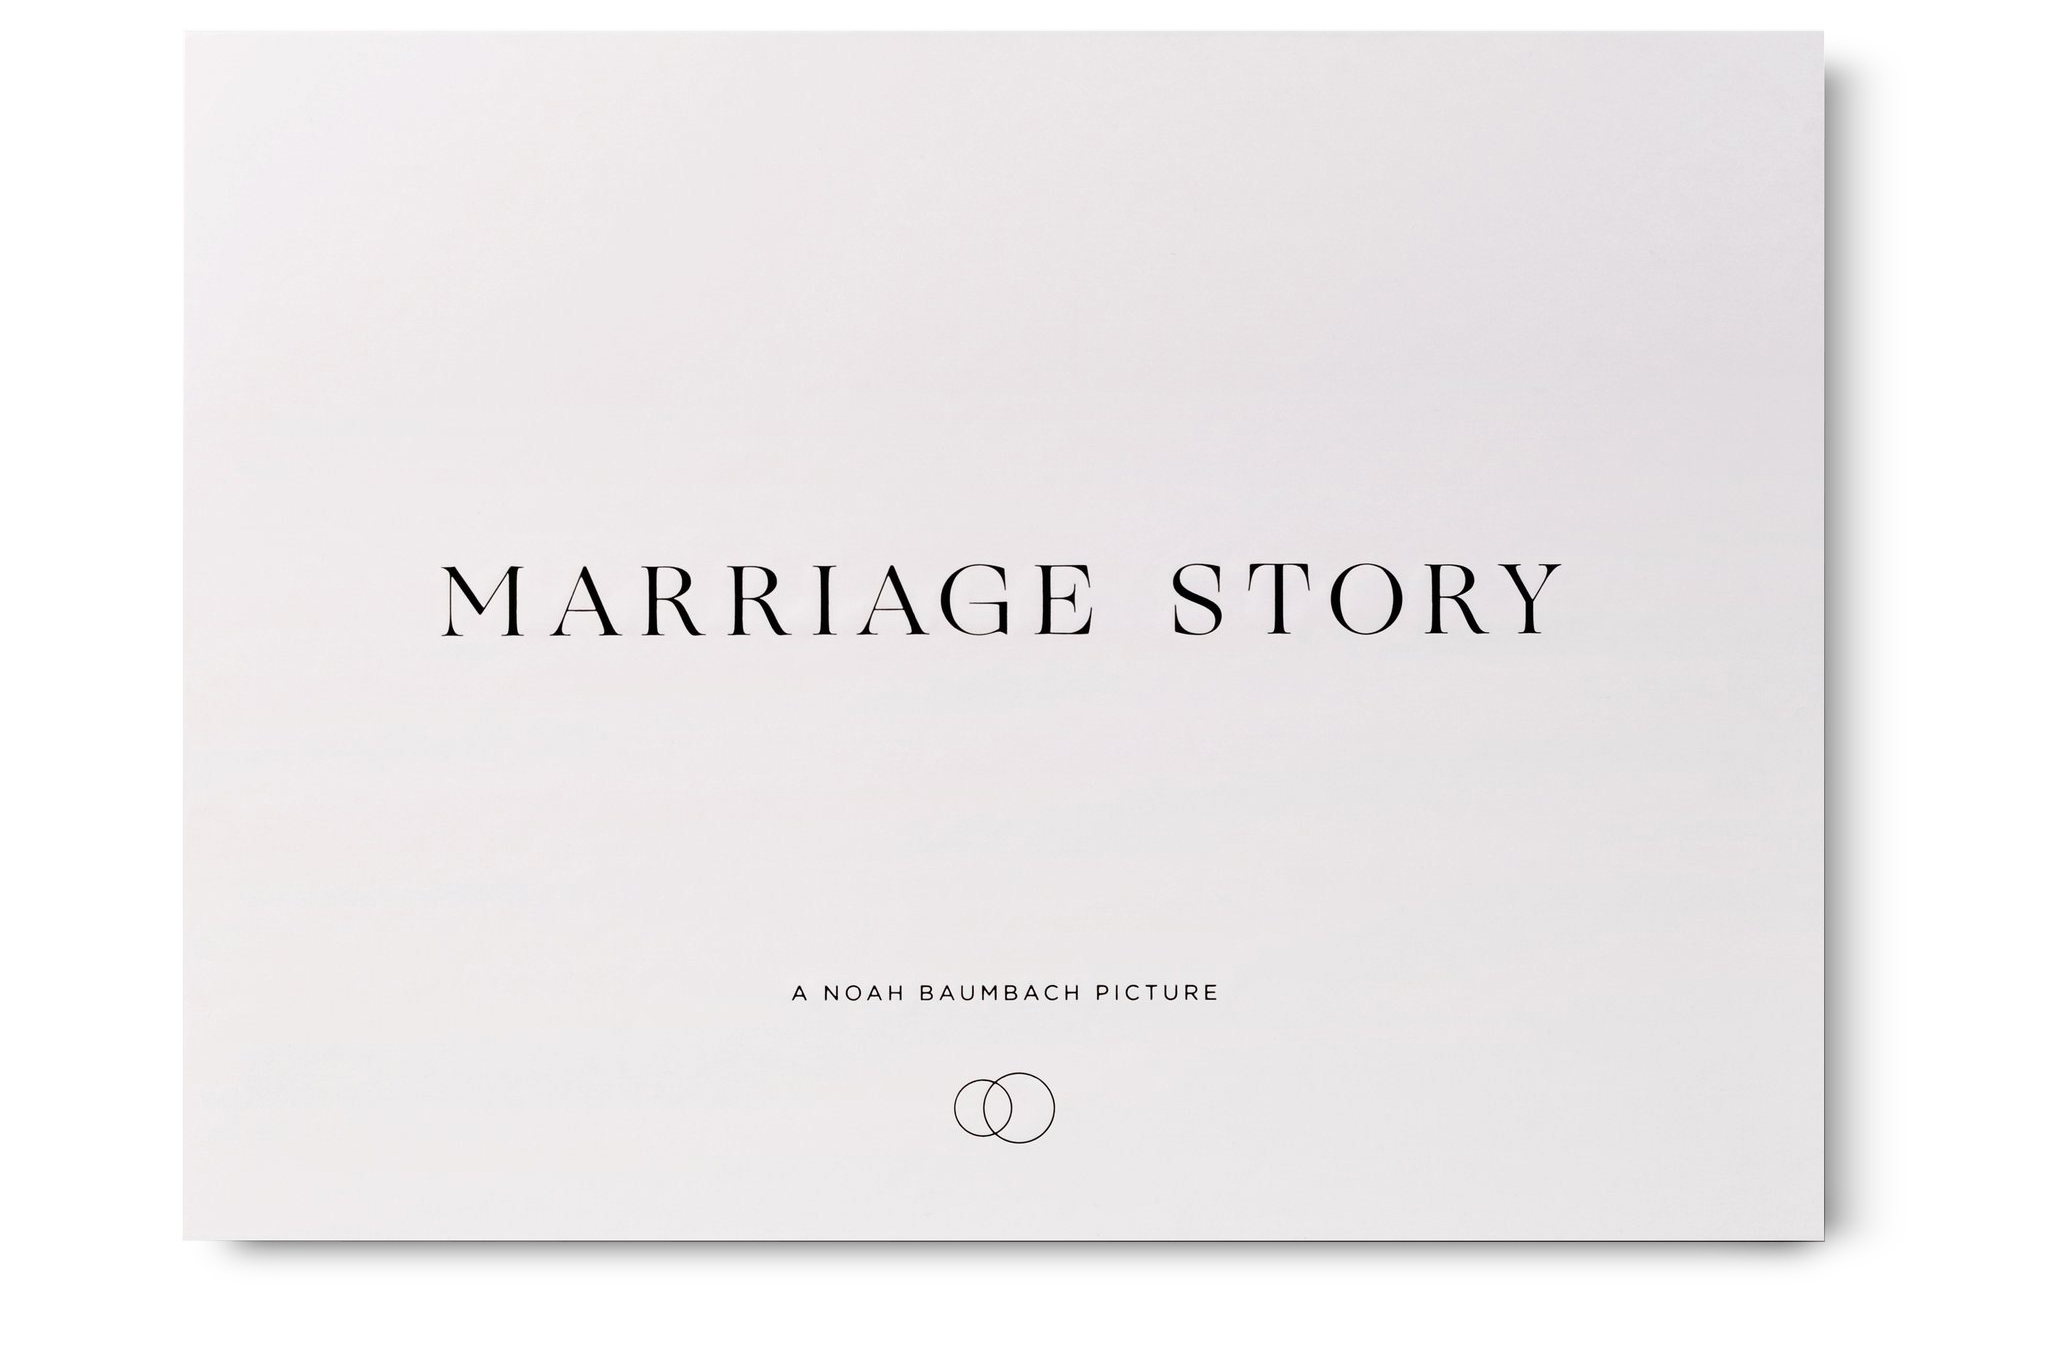 Marriage-Story-Box_1_2048xX